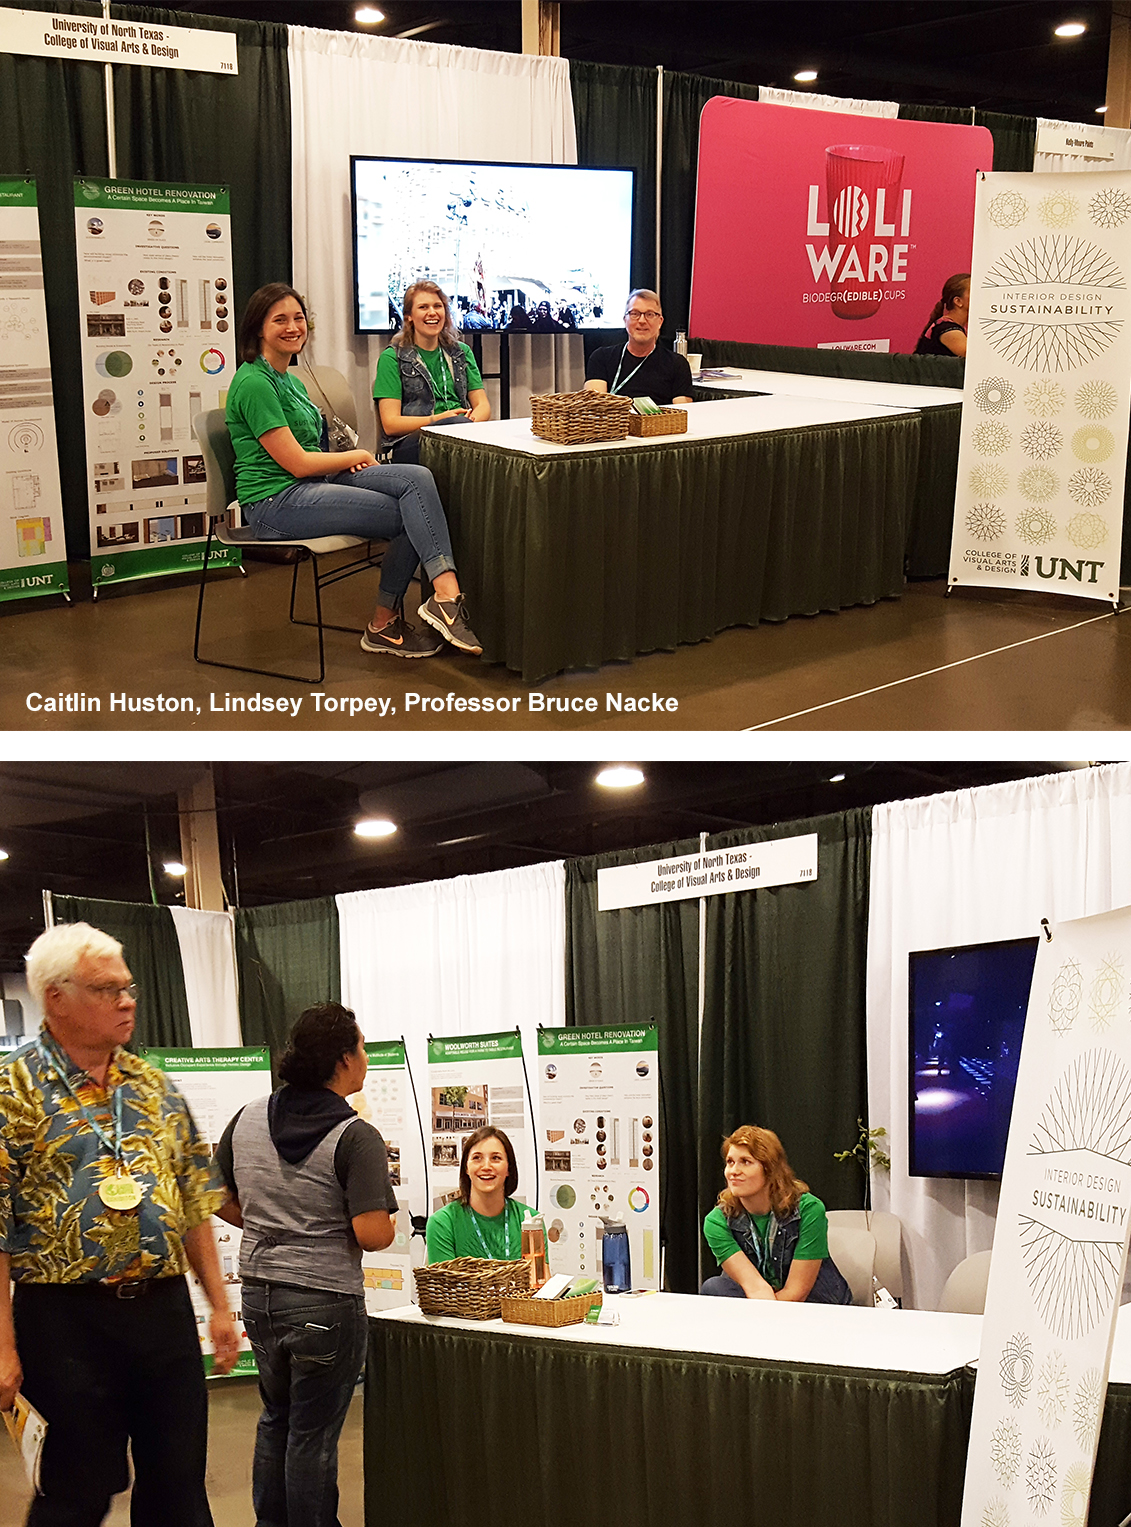 UNT Interior Design Program Participated In Earth Day Texas 2016 At Fair Park Dallas From April 22nd To 24th The Showcased Grad Track Students